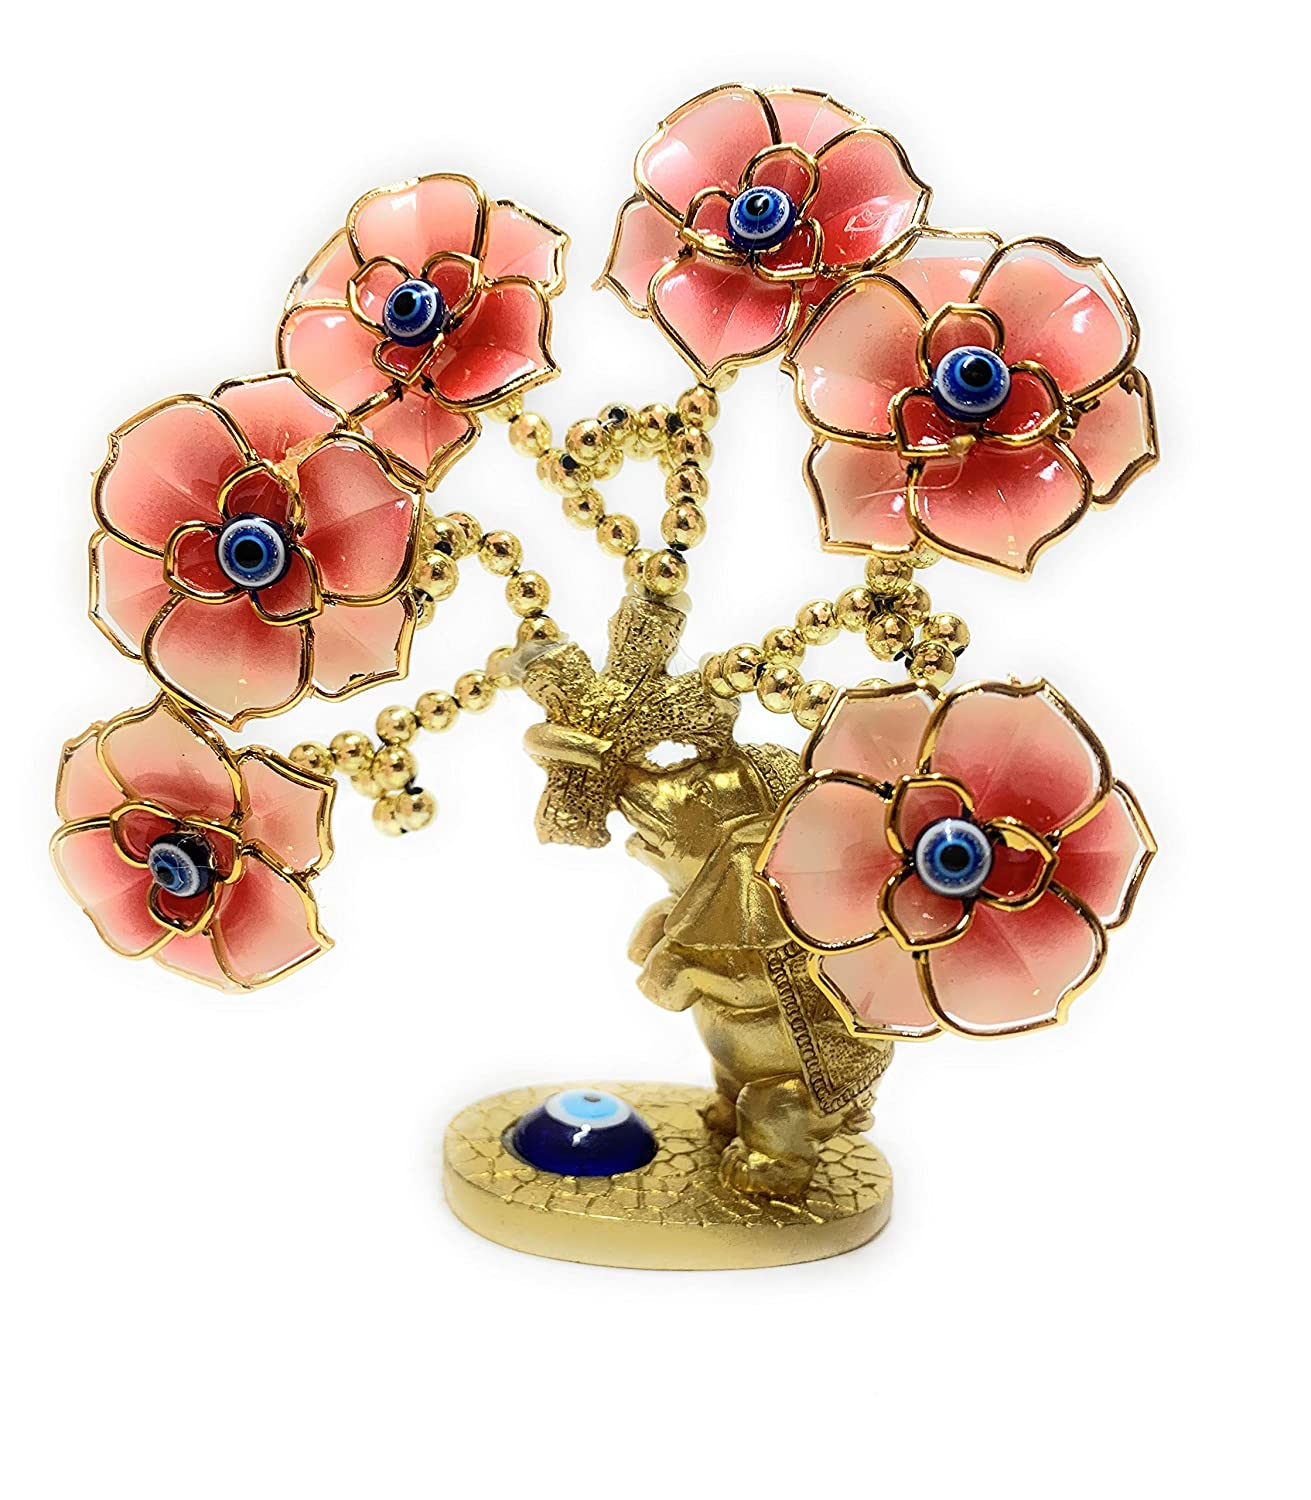 Lucky Evil Eye, Elephant and Flower Money Fortune Tree for Protection, Blessing, Strength and Power. A Beautiful Ornament for Home Table or Office Desk, Great Gift (Gold/Pink)